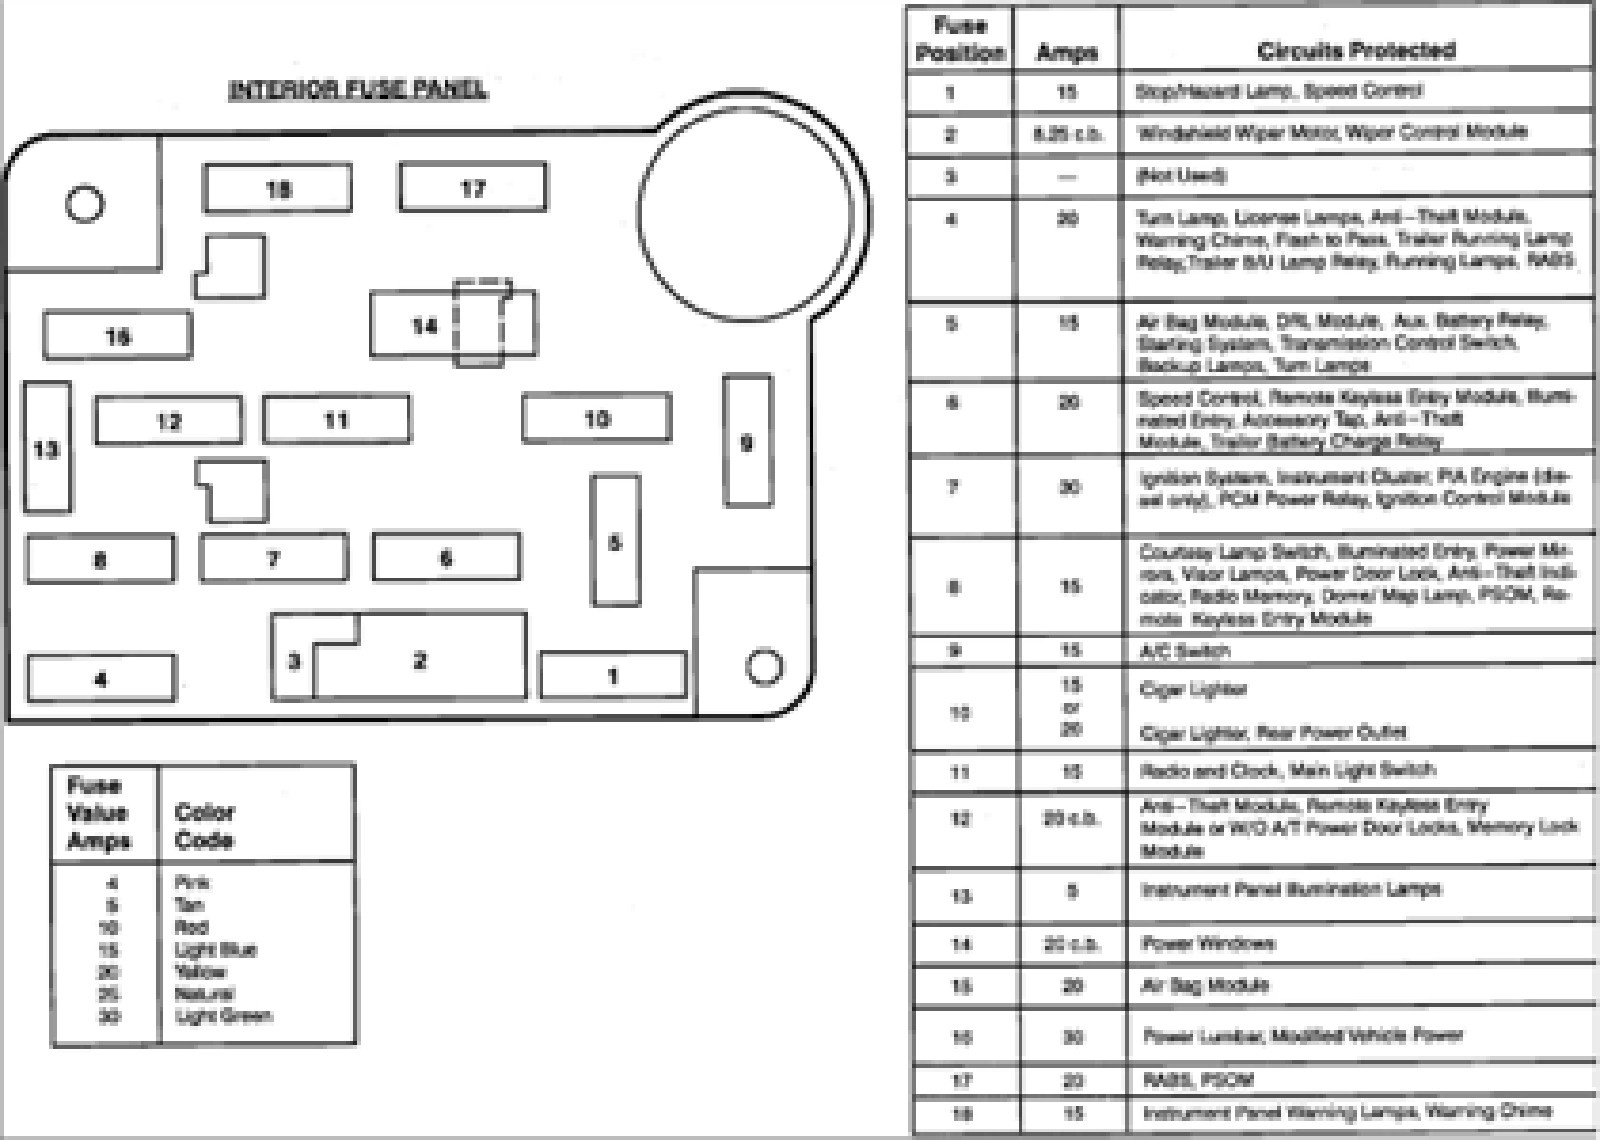 pic 8862473225641007897 1600x1200 ford e 150 questions fuse diagram for a 1993 ford econoline van ford e 150 fuse box diagram at pacquiaovsvargaslive.co